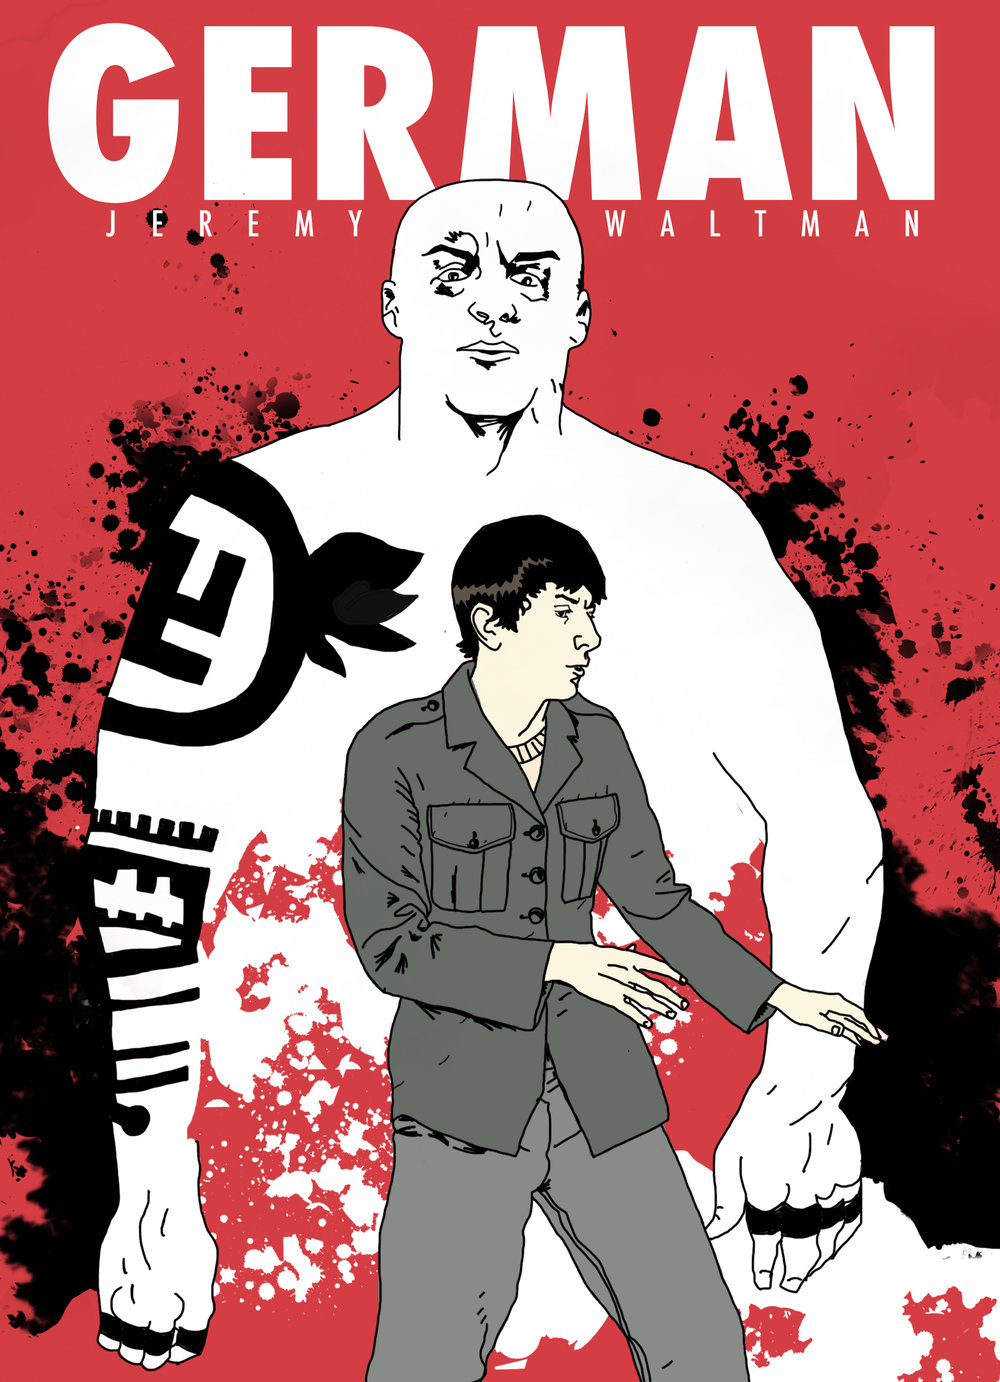 German - GERMANSYNOPSIS: German is a young American trying to lead a quiet life. When he's jumped by Nazis on his way home from work it's up to him to find justice.From the award-winning filmmaker JEREMY WALTMAN comes GERMAN, the definitive edition. This full-color version includes the bonus story